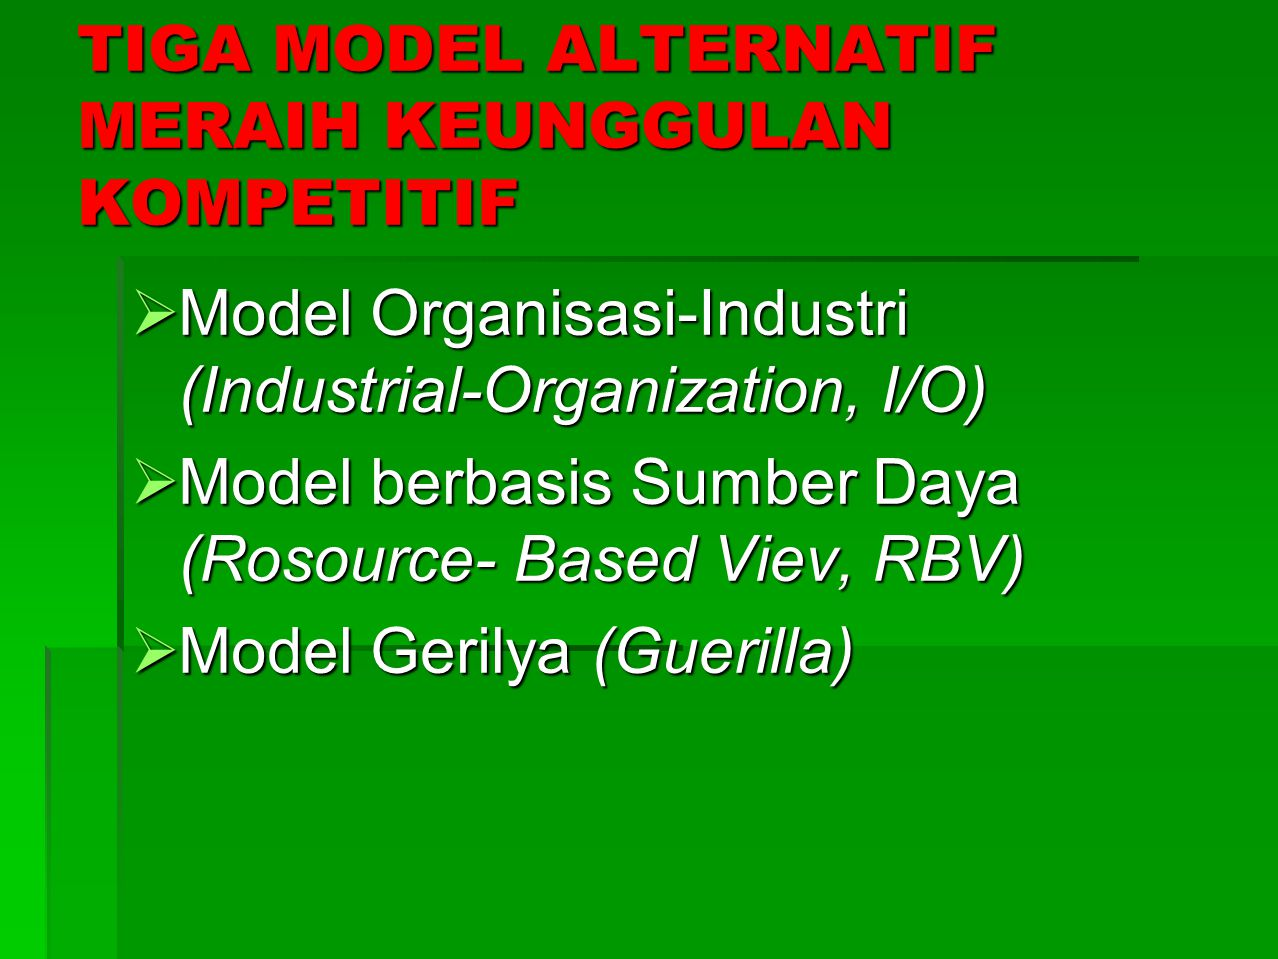 TIGA MODEL ALTERNATIF MERAIH KEUNGGULAN KOMPETITIF  Model Organisasi-Industri (Industrial-Organization, I/O)  Model berbasis Sumber Daya (Rosource- Based Viev, RBV)  Model Gerilya (Guerilla)